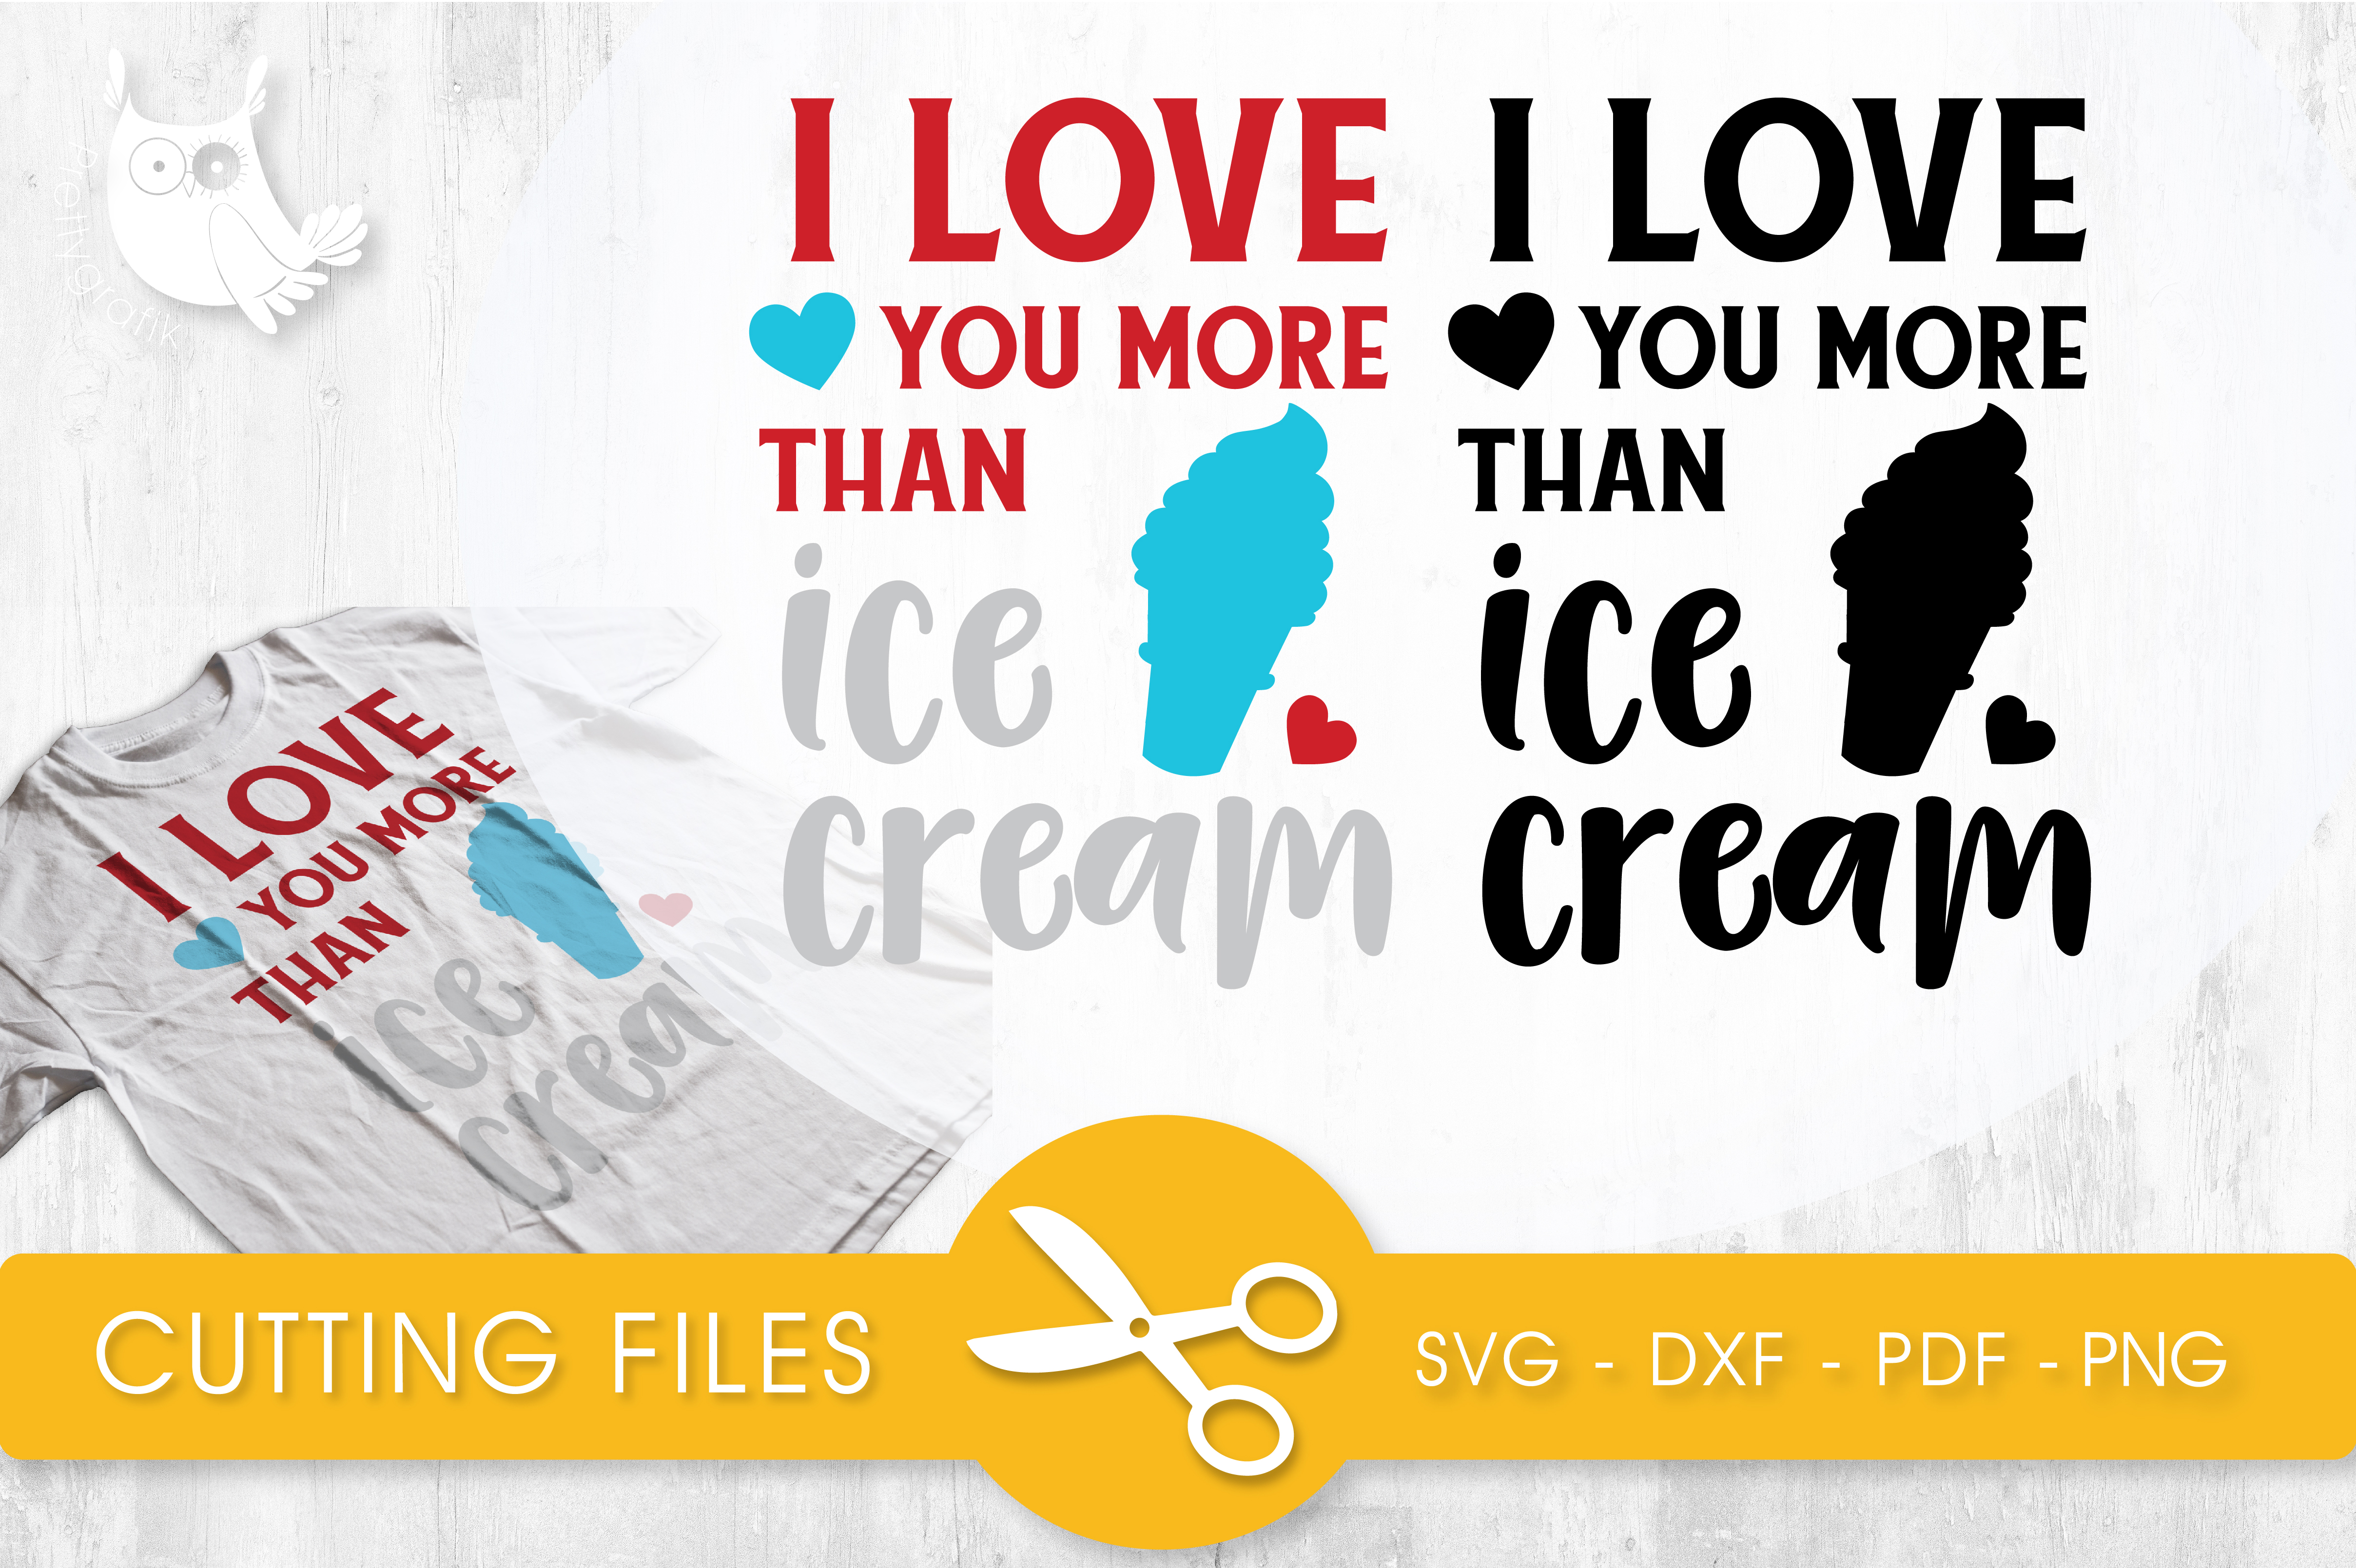 Download Free I Love You More Than Ice Cream Graphic By Prettycuttables for Cricut Explore, Silhouette and other cutting machines.